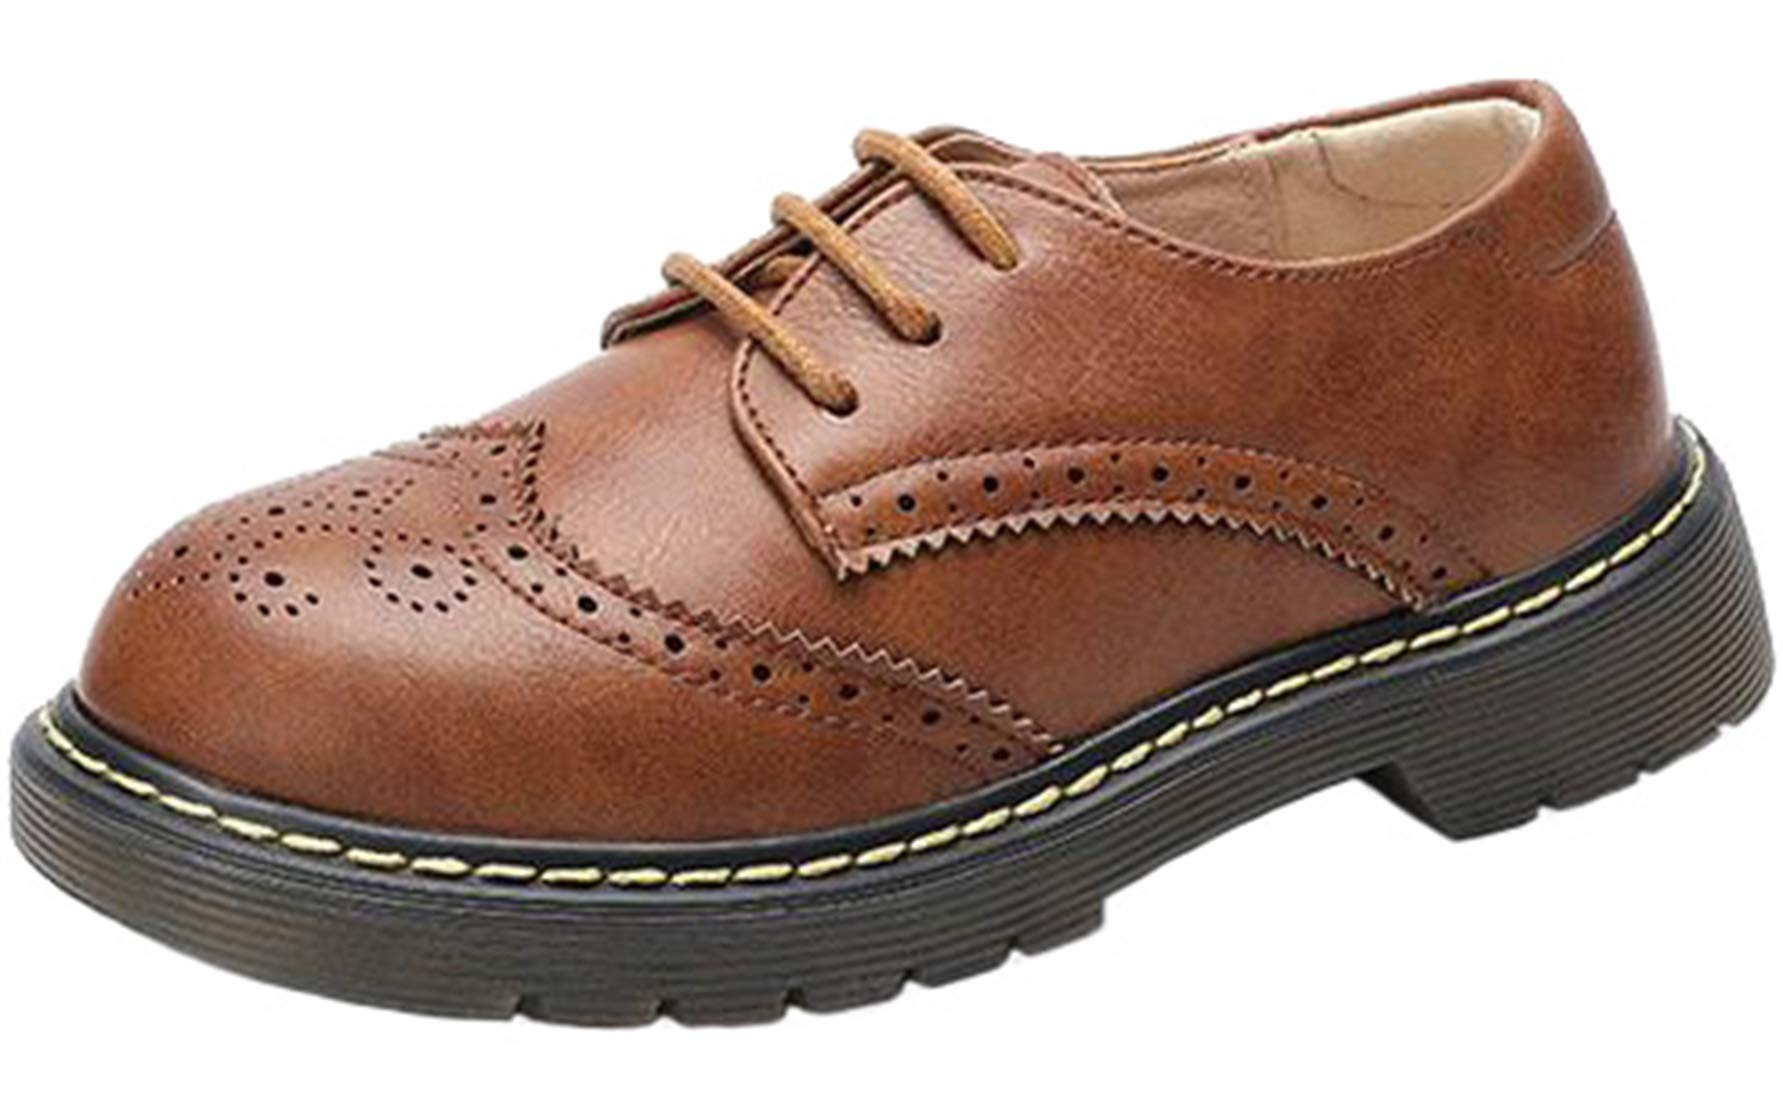 PPXID Boy's Girl's British Style Leather School Uniform Brogue Lace up Oxford Shoes-Brown 11.5 US Size